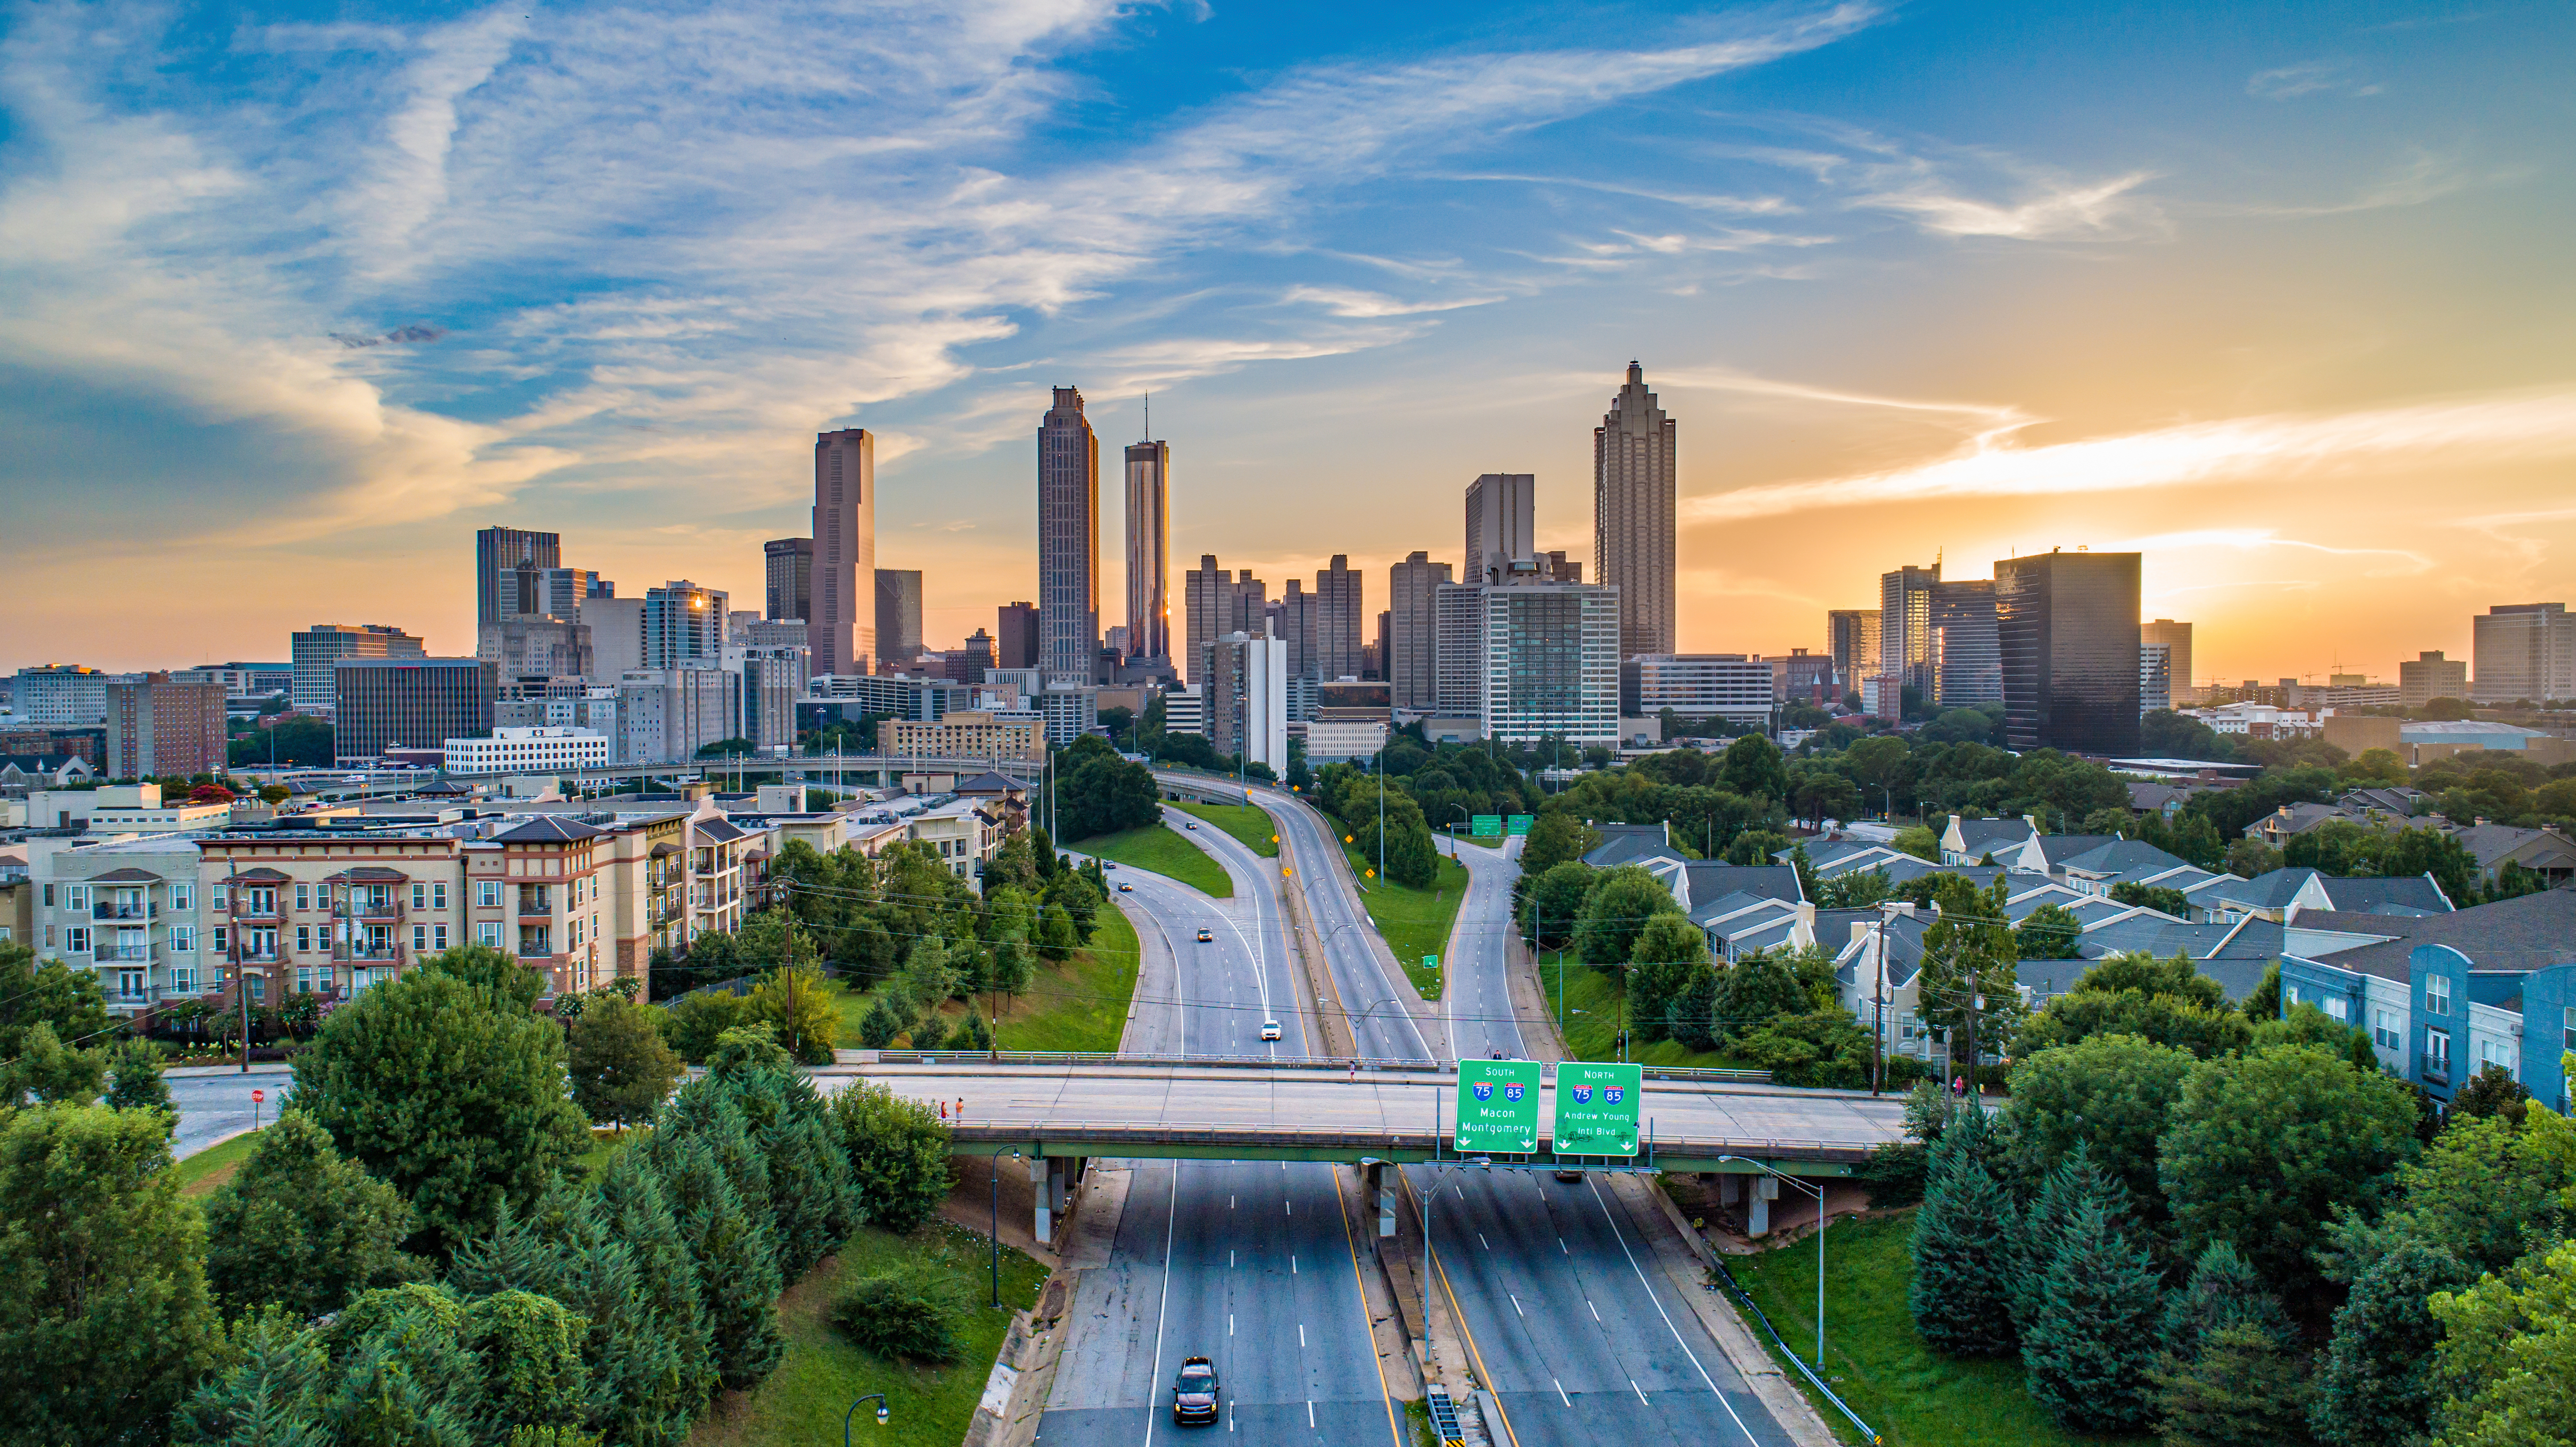 Downtown Atlanta skyline from the connector